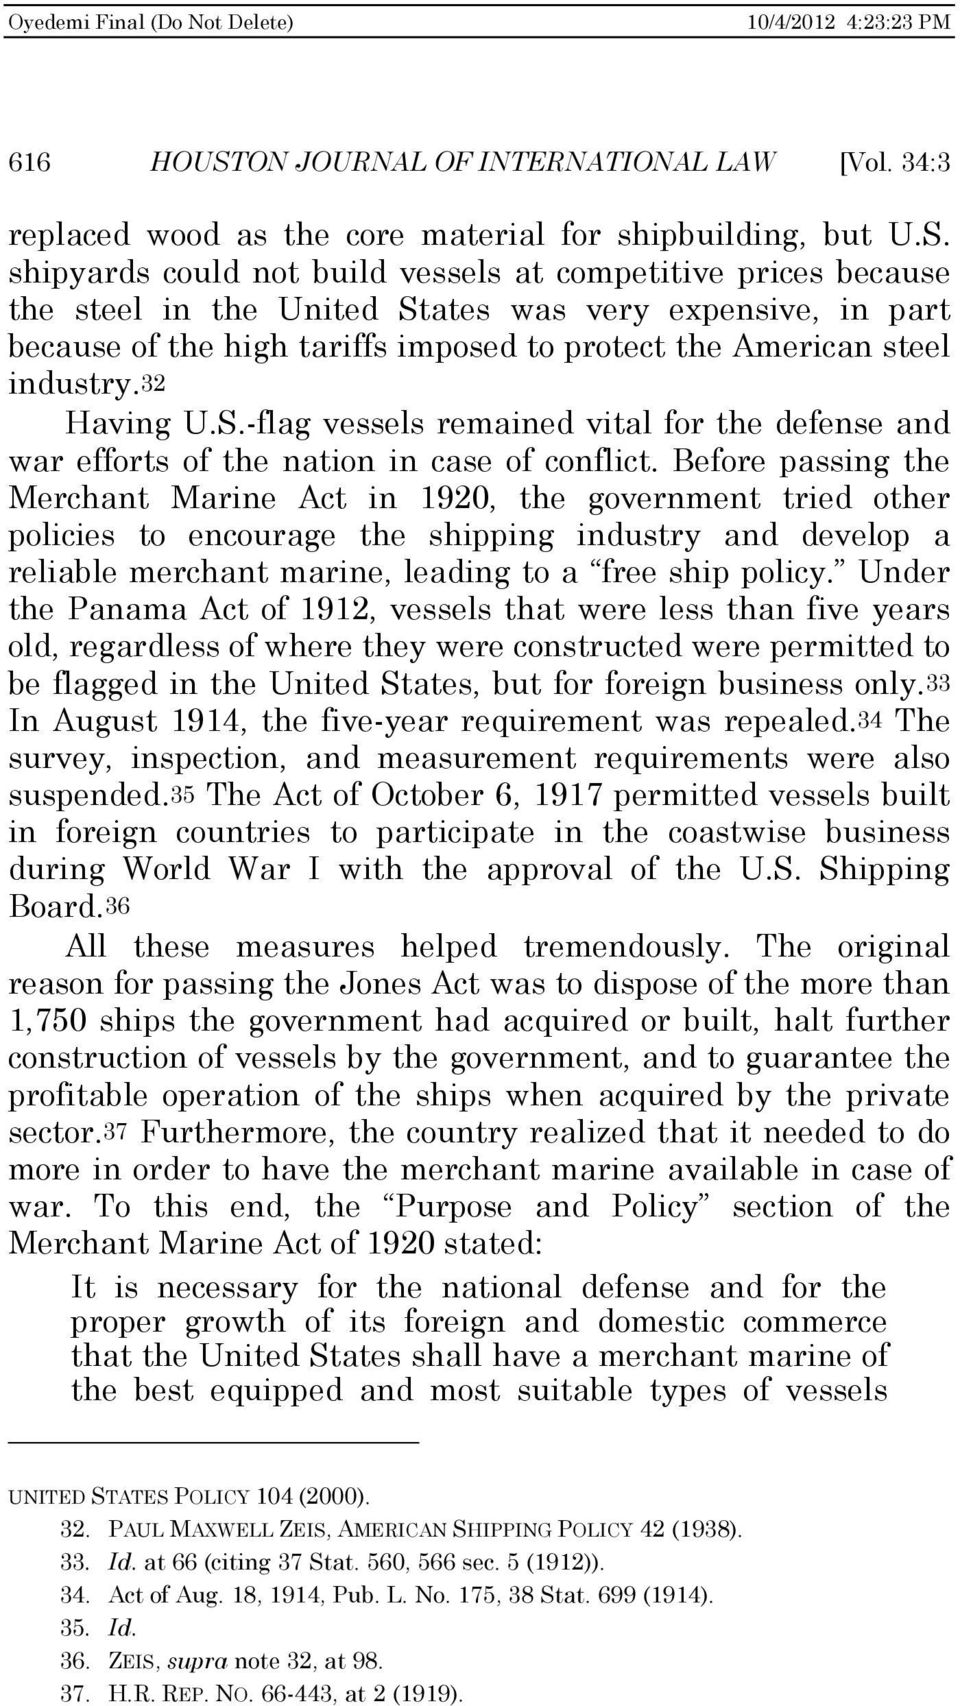 shipyards could not build vessels at competitive prices because the steel in the United States was very expensive, in part because of the high tariffs imposed to protect the American steel industry.